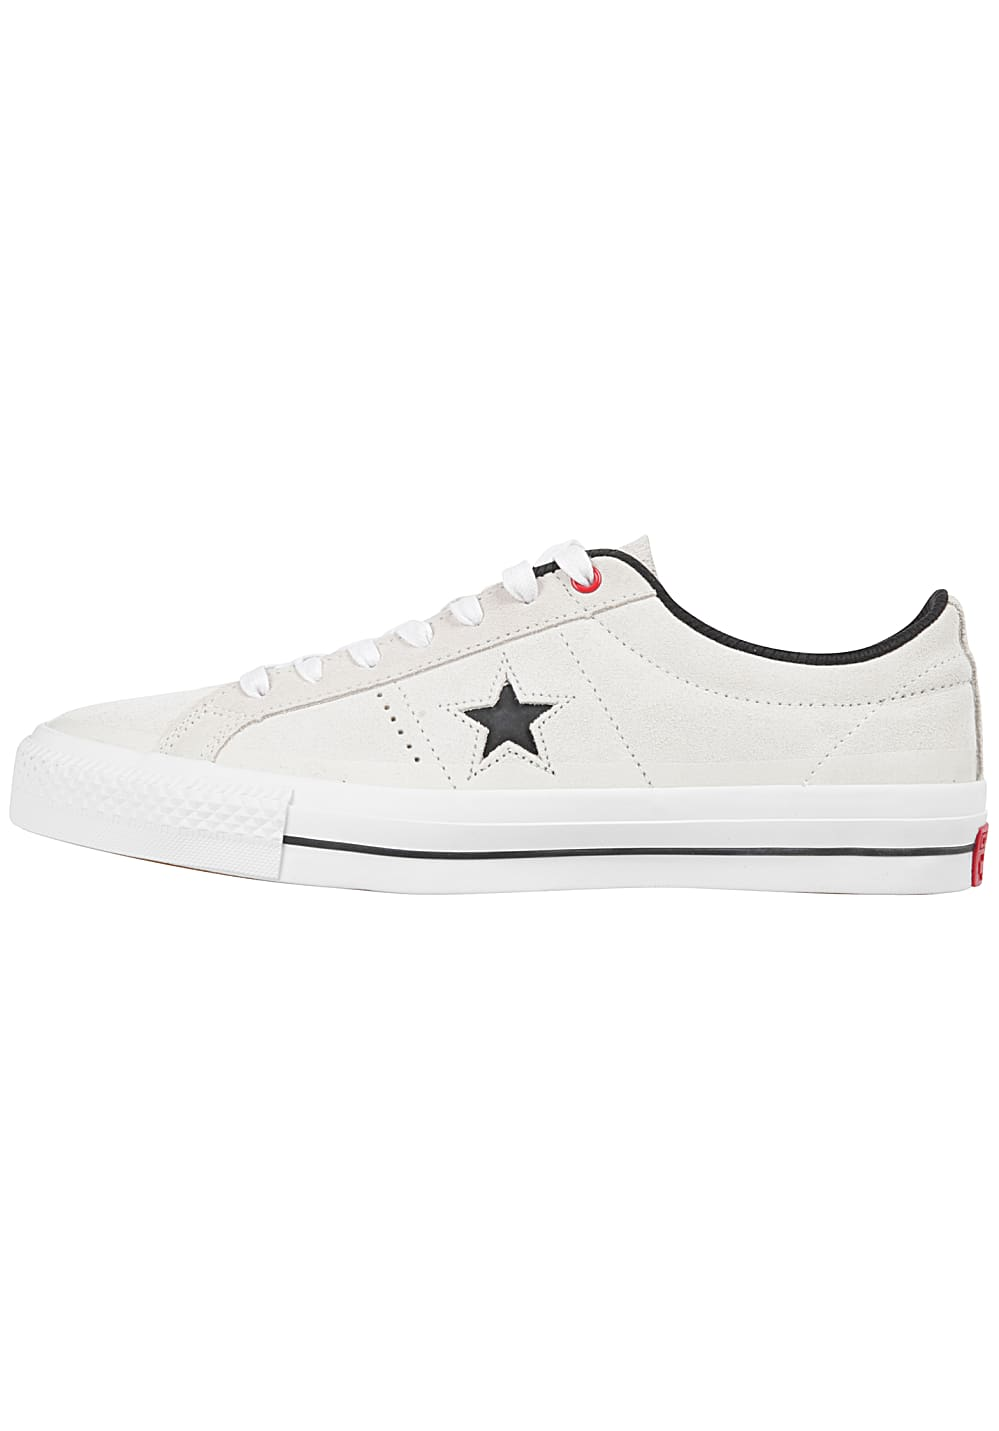 converse one star pro suede